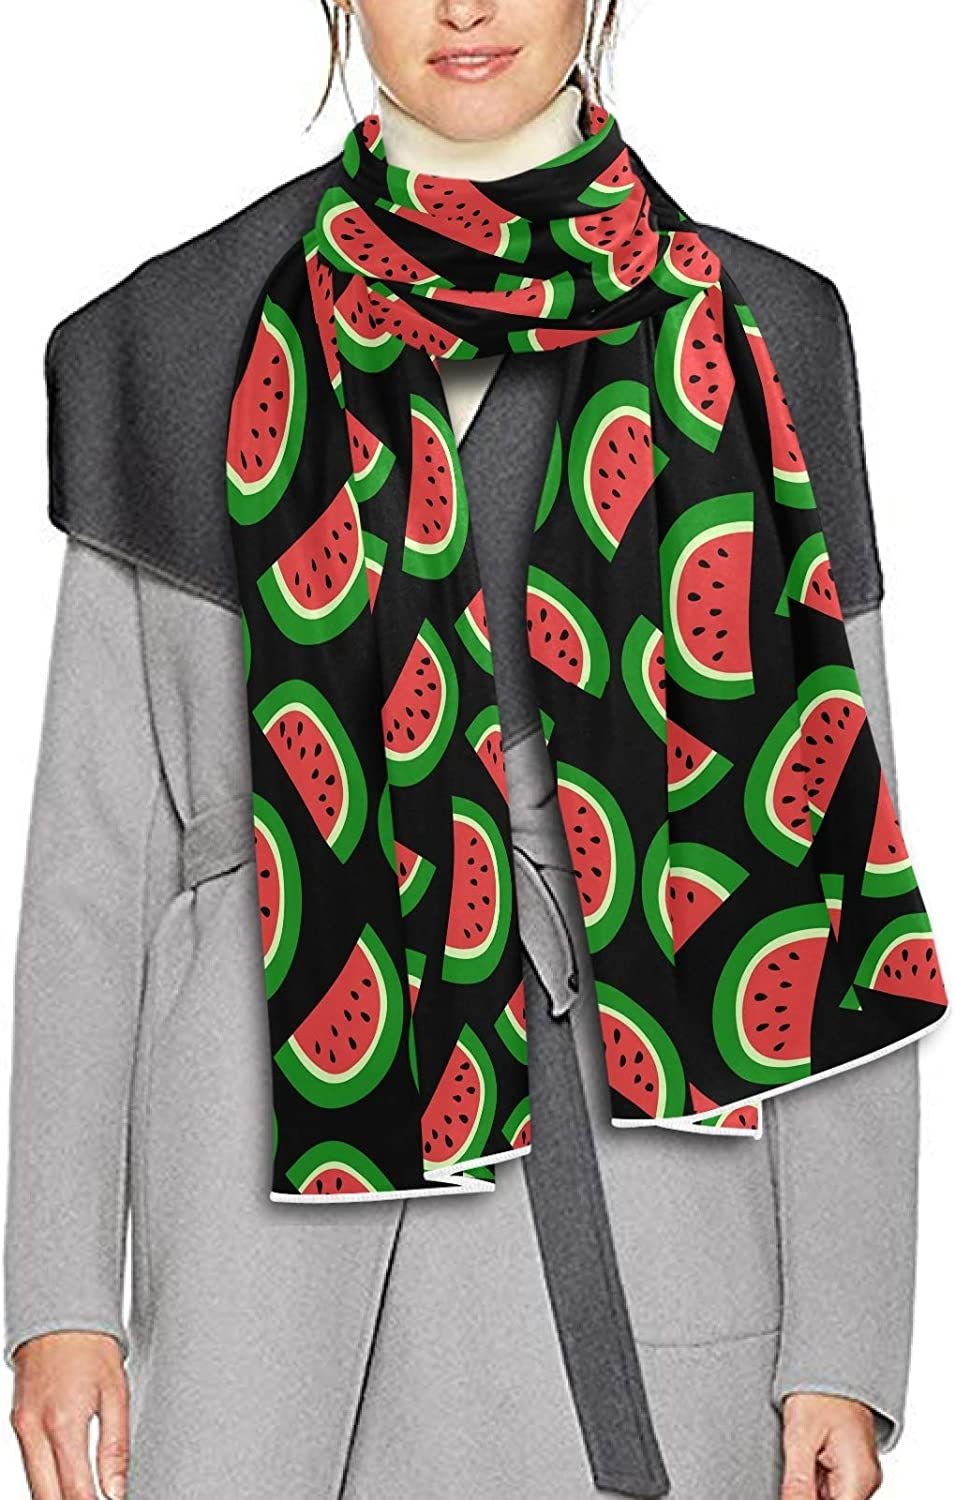 Scarf for Women and Men Watermelon Fruit Red Blanket Shawl Scarves Wraps Thick Soft Winter Oversized Scarf Lightweight